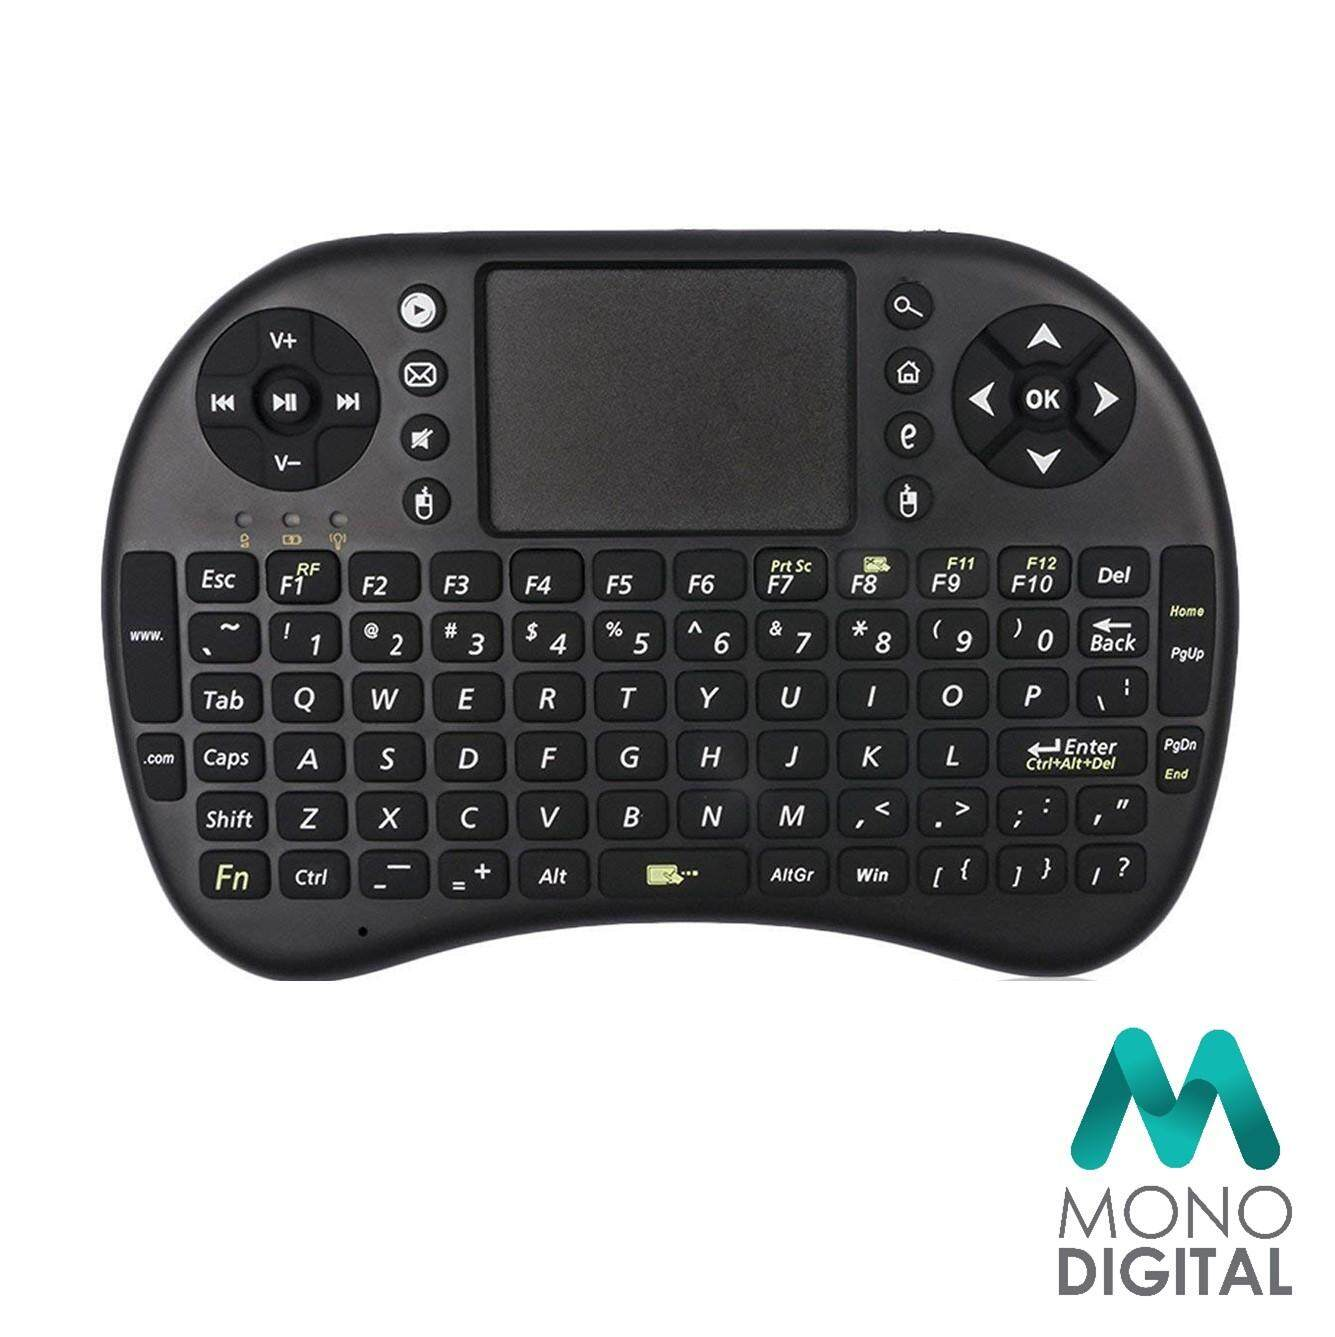 Mini Wireless Keyboard 2.4G with Touchpad Handheld Keyboard for PC Android TV Box Malaysia